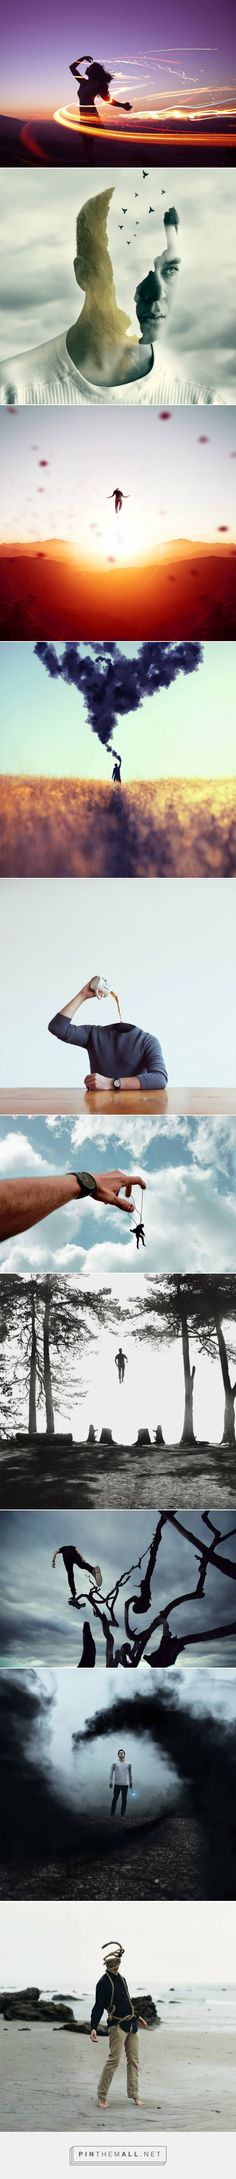 Conceptual Photography by Chris Rivera | Inspiration Grid | Design Inspiration - created via http://pinthemall.net